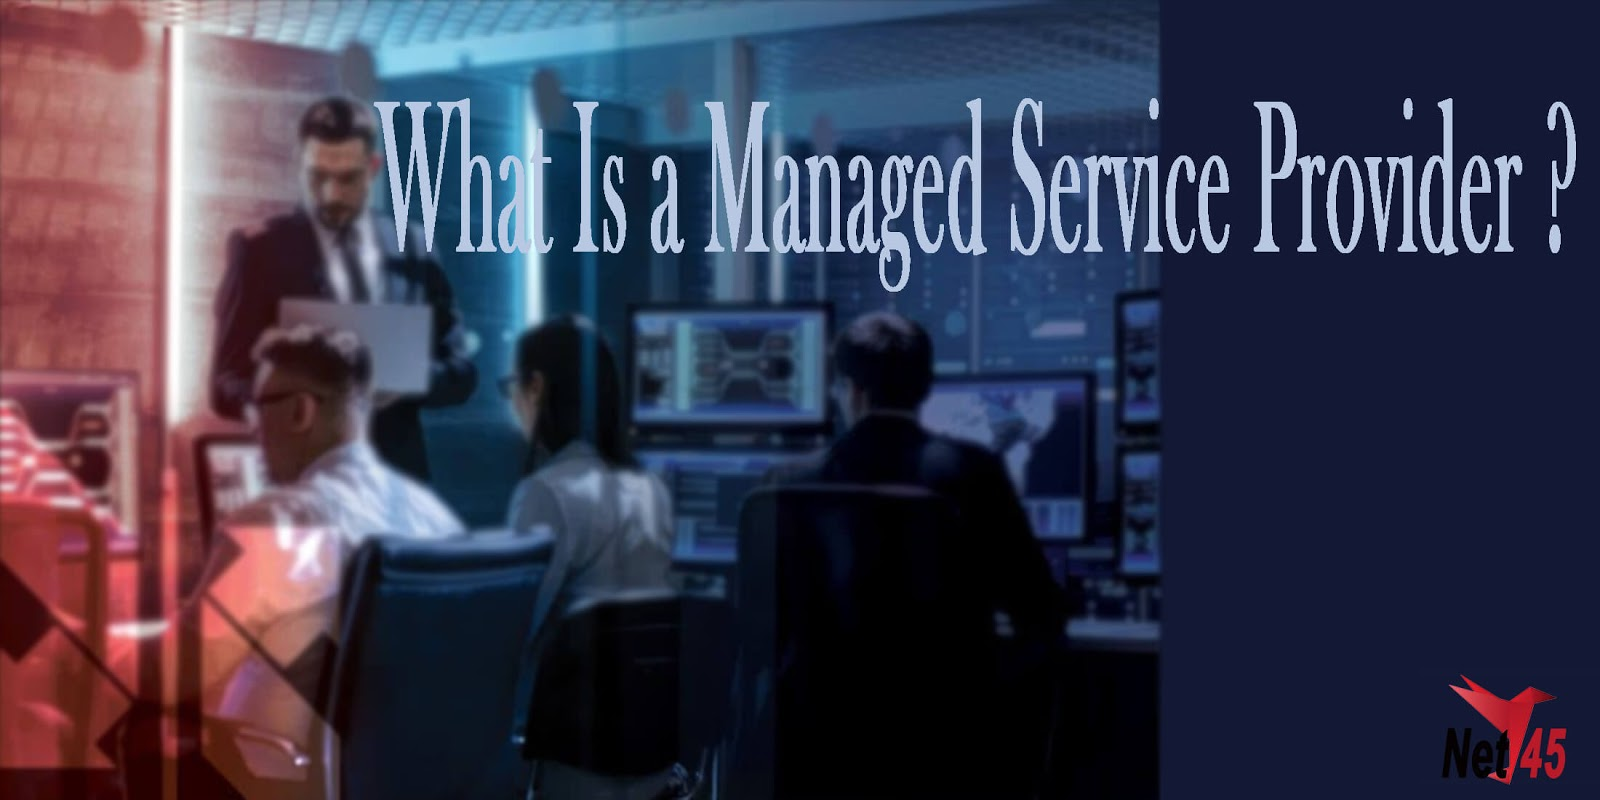 managed service provider,managed services,managed it services,managed services provider,managed service providers,it services,managed service,what is managed services,it managed services,aws managed service provider,managed services marketing,managed it service provider,managed service provider (msp),aws managed service provider support,aws managed service provider partners,aws managed service provider tutorial